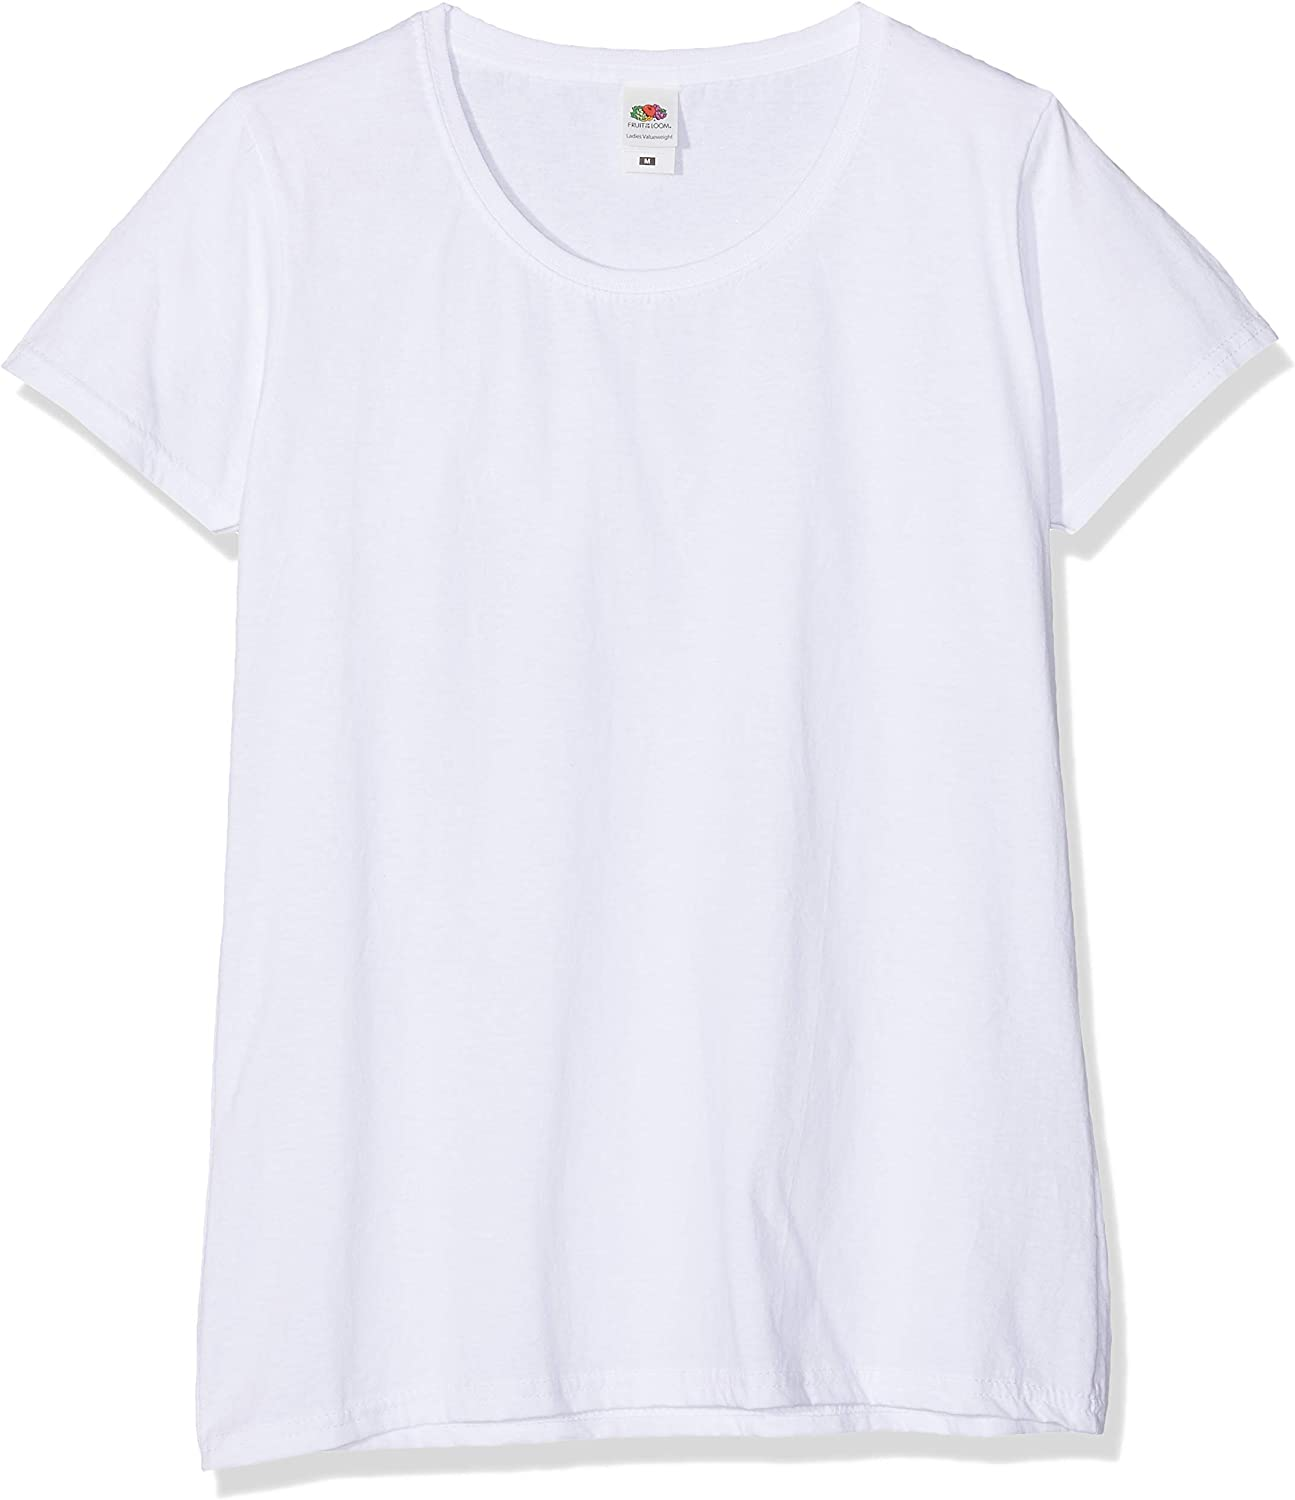 Lady-fit Valueweight Tee T-Shirt Donna 3 Pack Fruit of the Loom